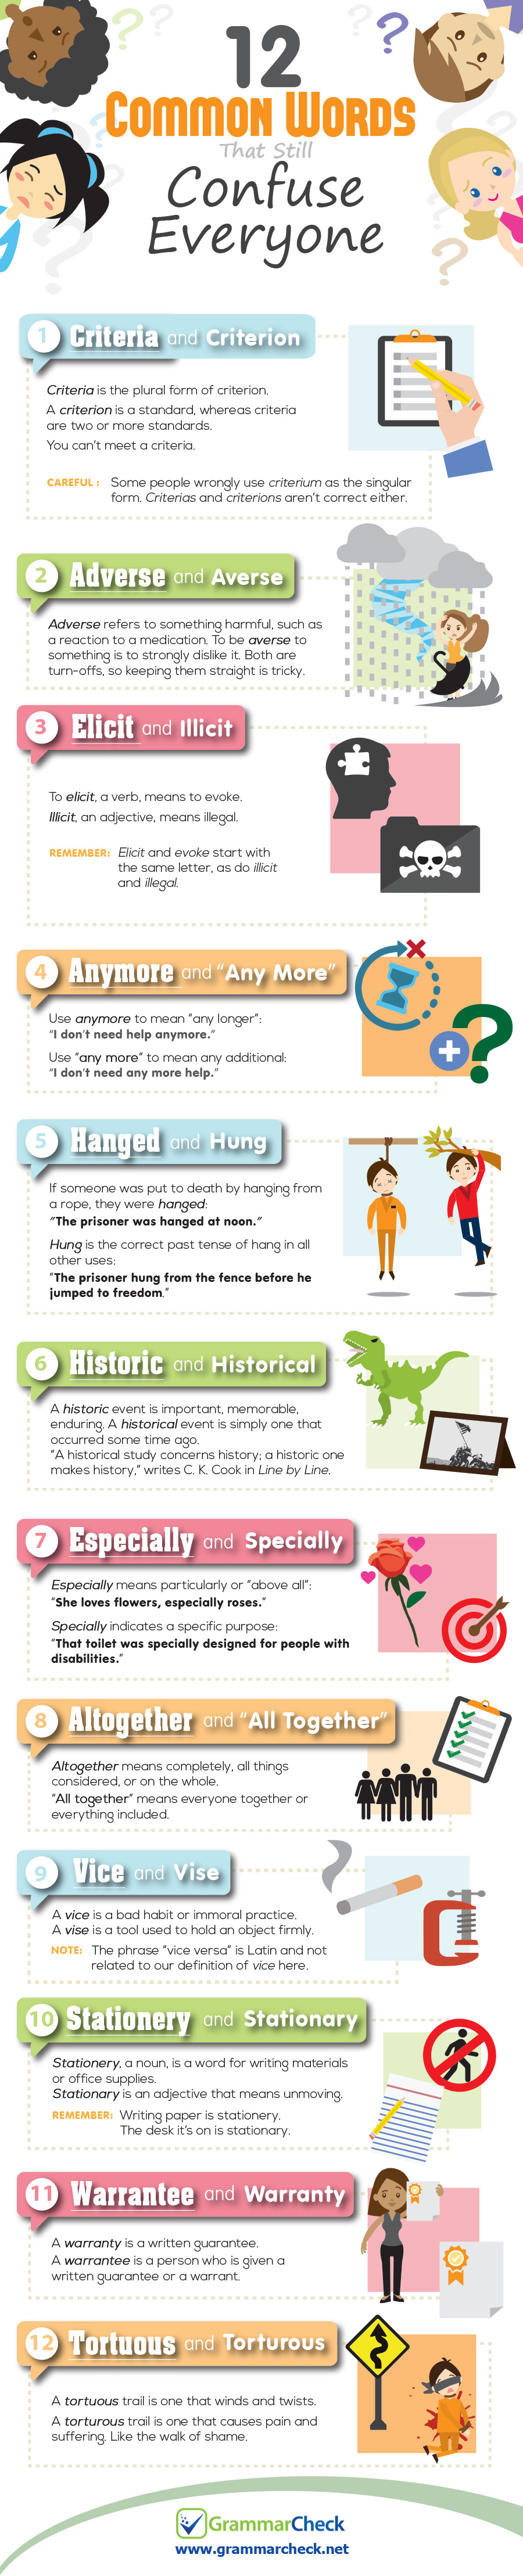 12 Commonly Used English Words that Still Confuse and Confound - Infographic